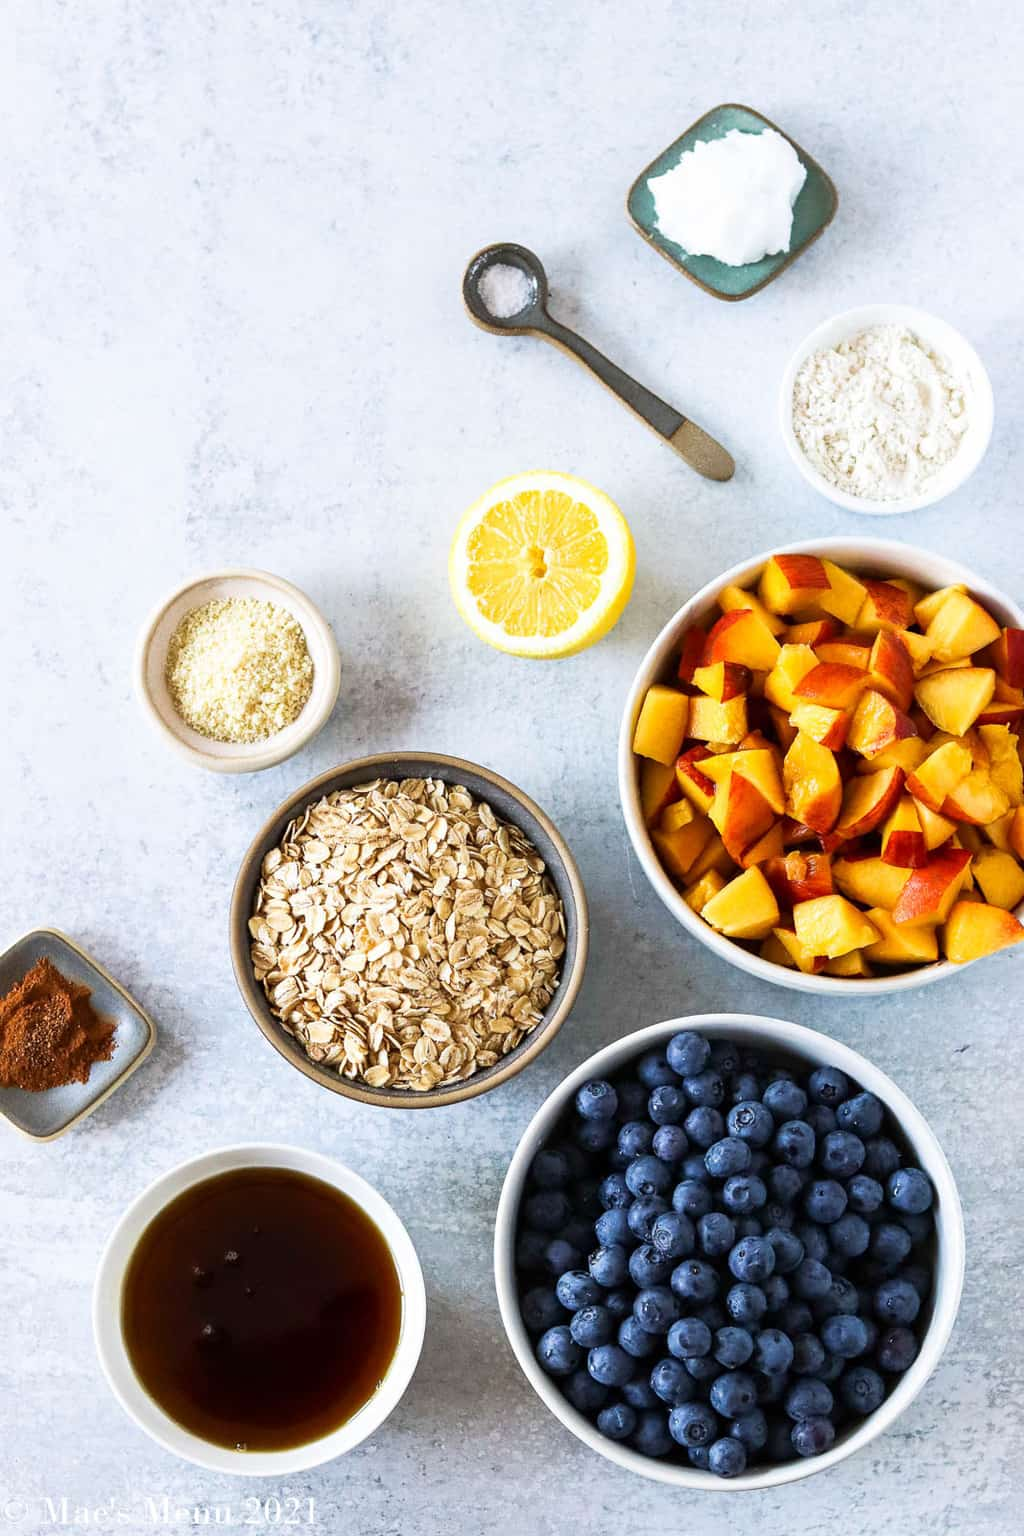 An overhead shot of all the ingredients for the blueberry peach crisp